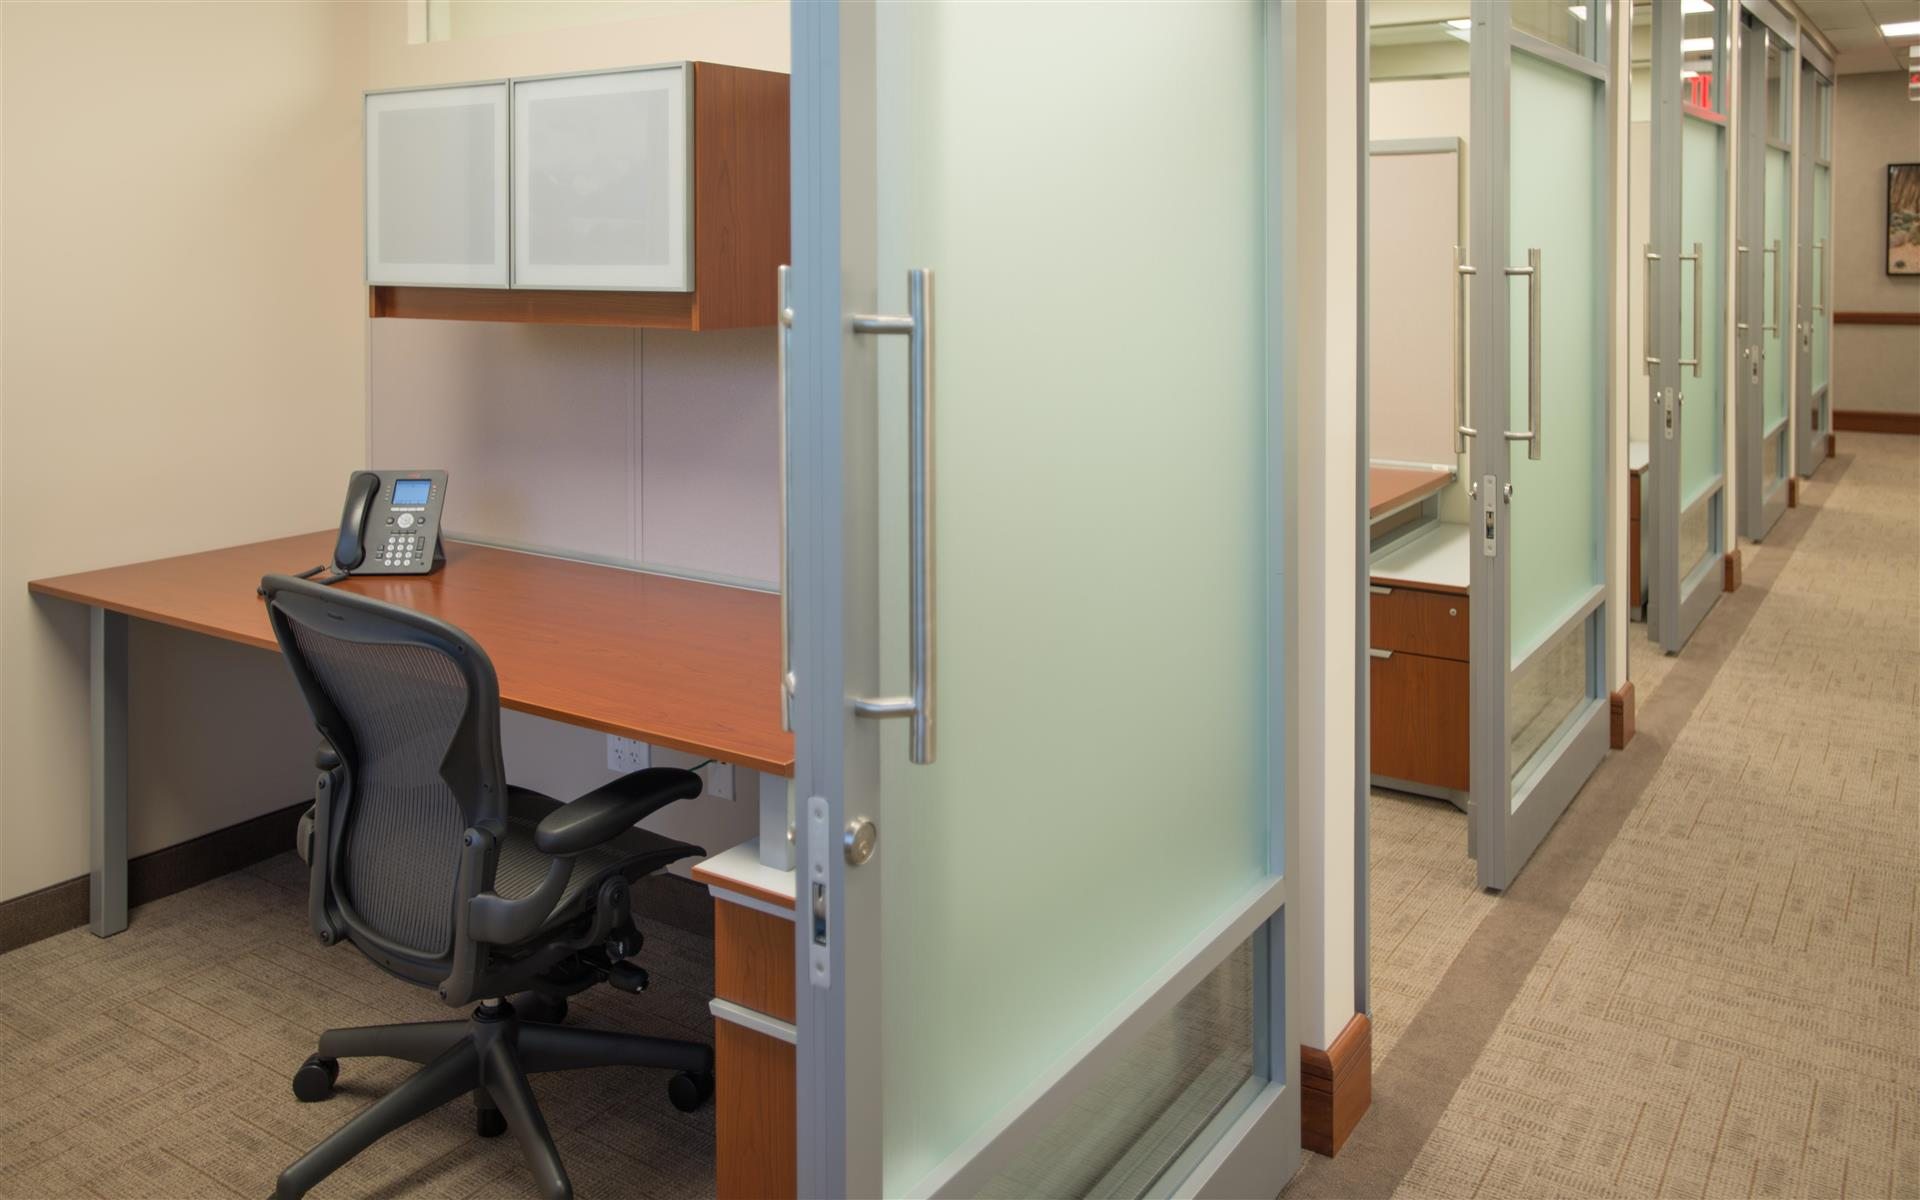 Symphony Workplaces -Westport CT - Solo Office - Privacy and Comfort